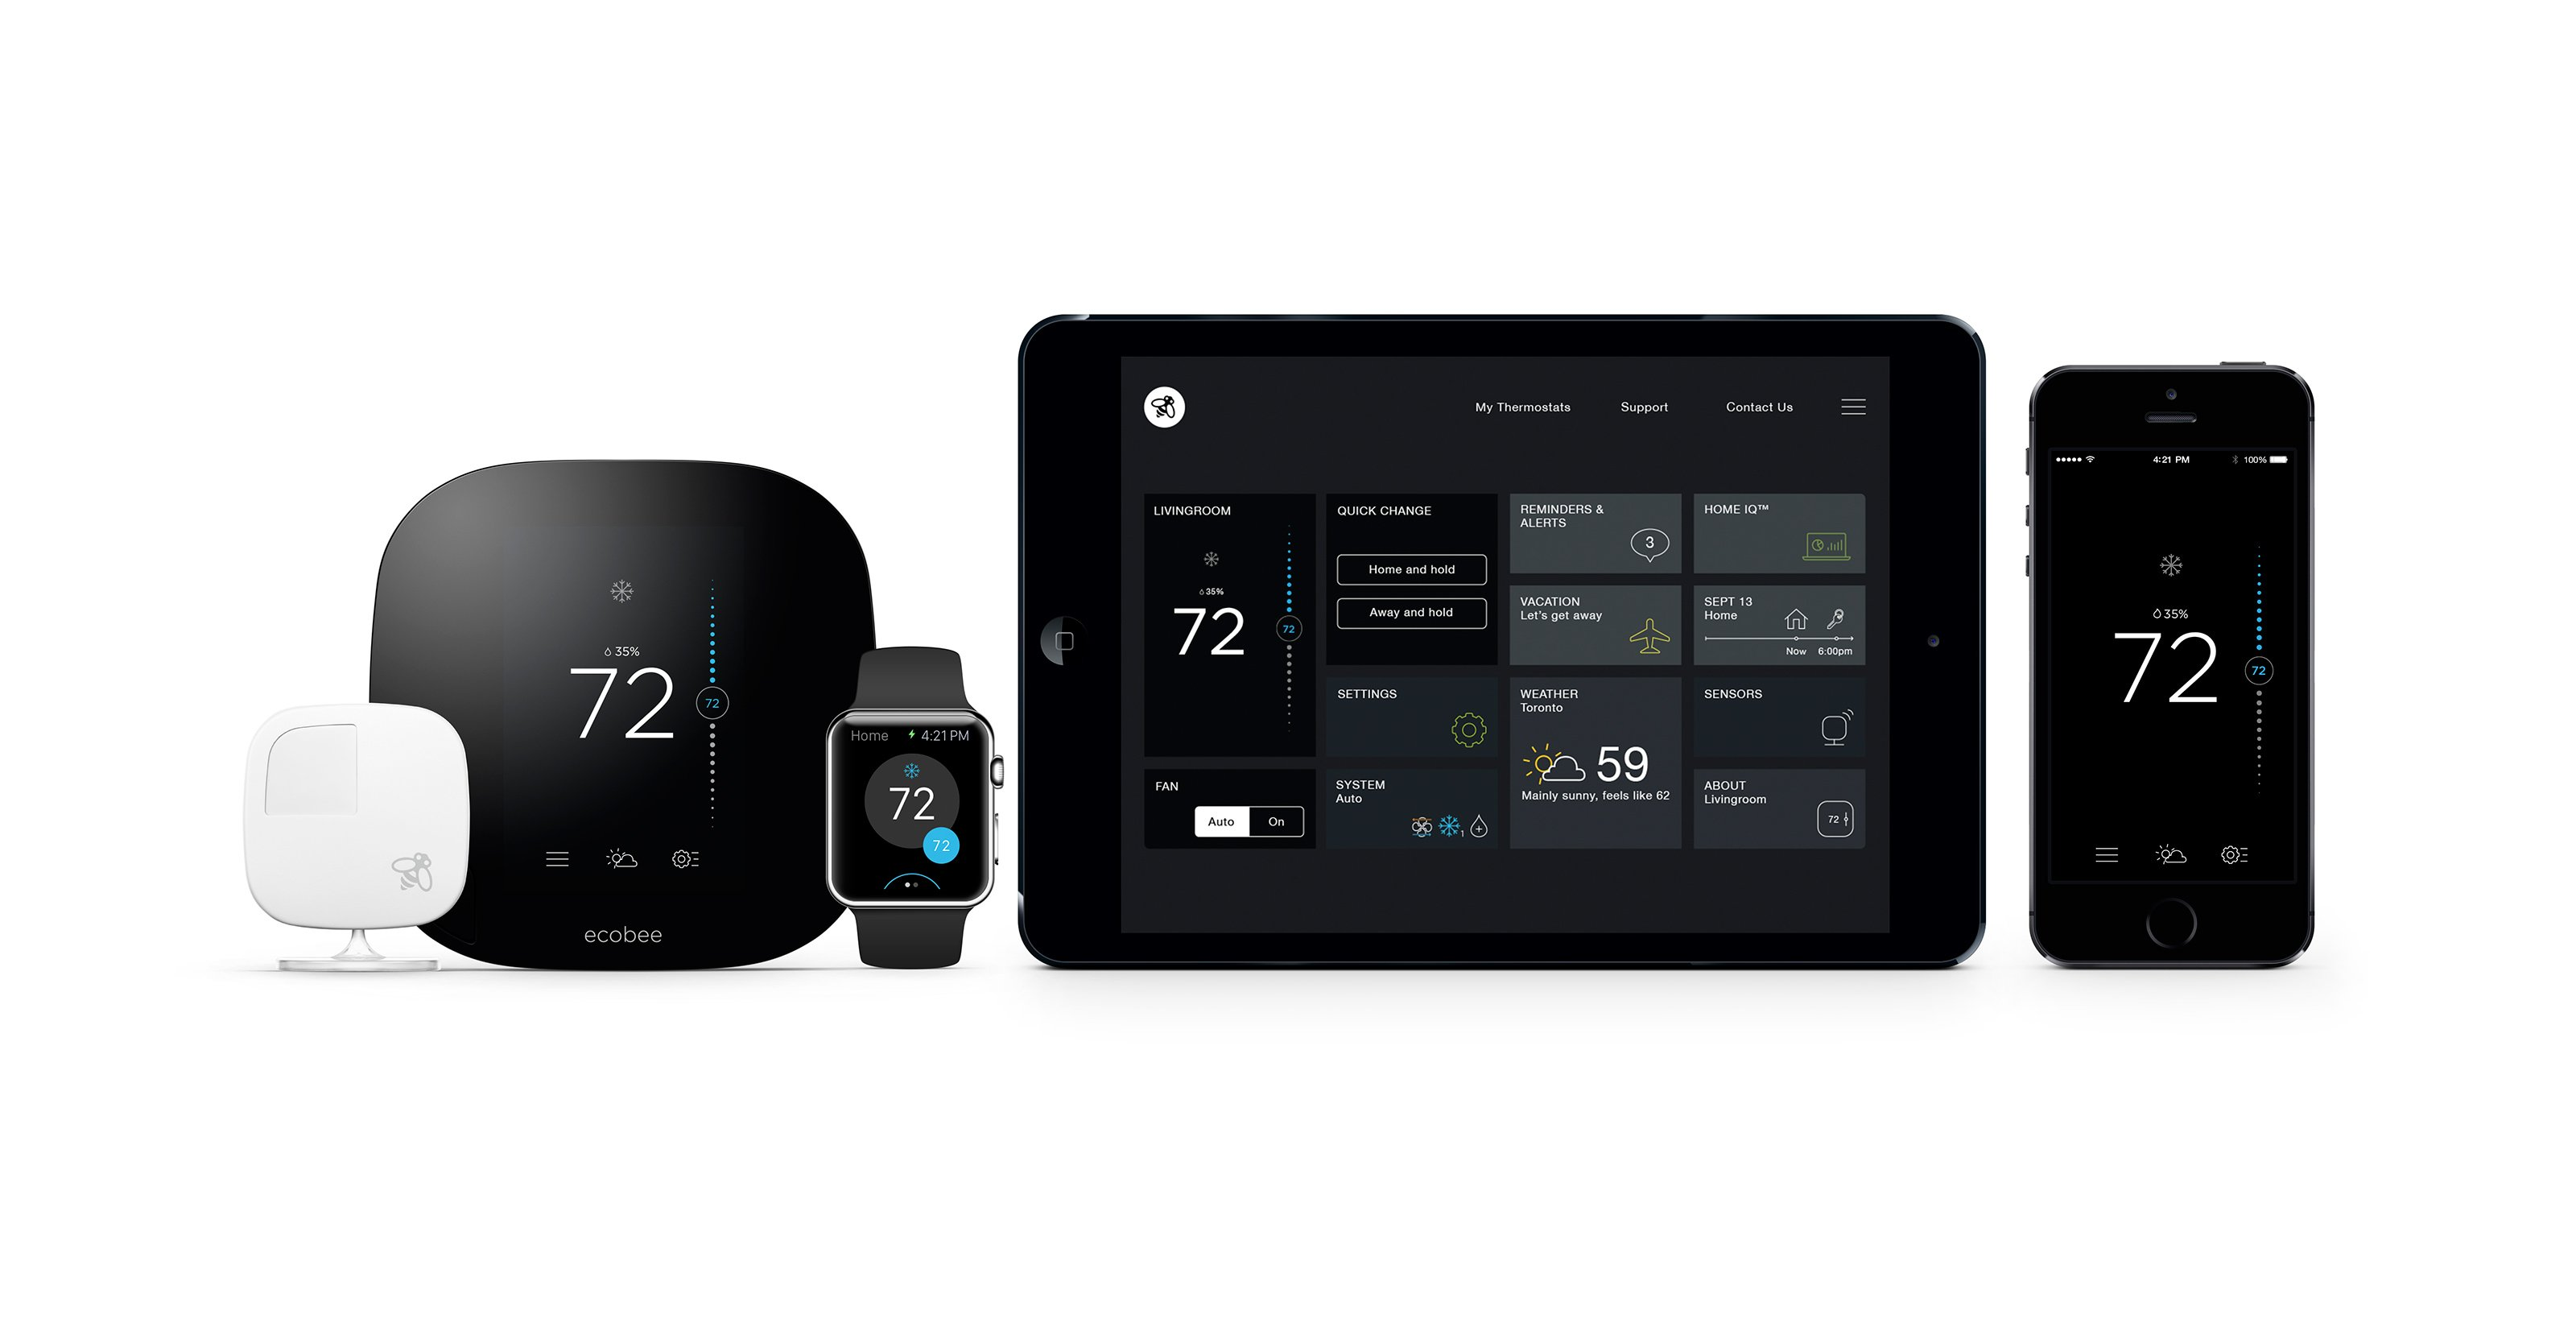 Ecobee Sensor Review Ecobee3 Smart Thermostat With Apple Homekit Support